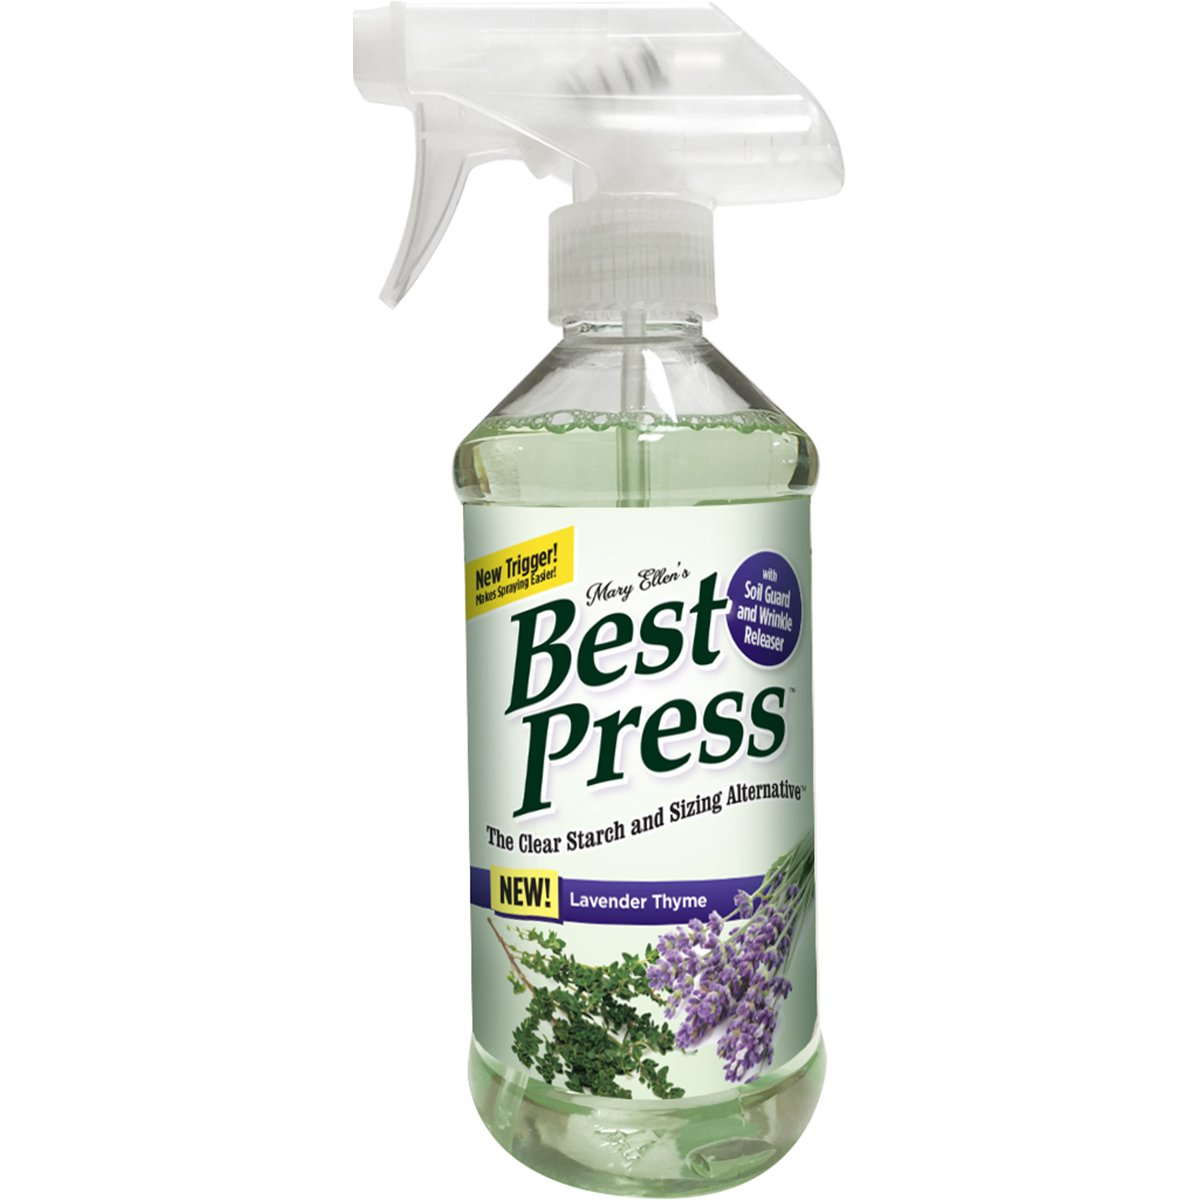 Mary Ellen Products Best Press Lavender Thyme, 16.9 oz by Mary Ellen Products